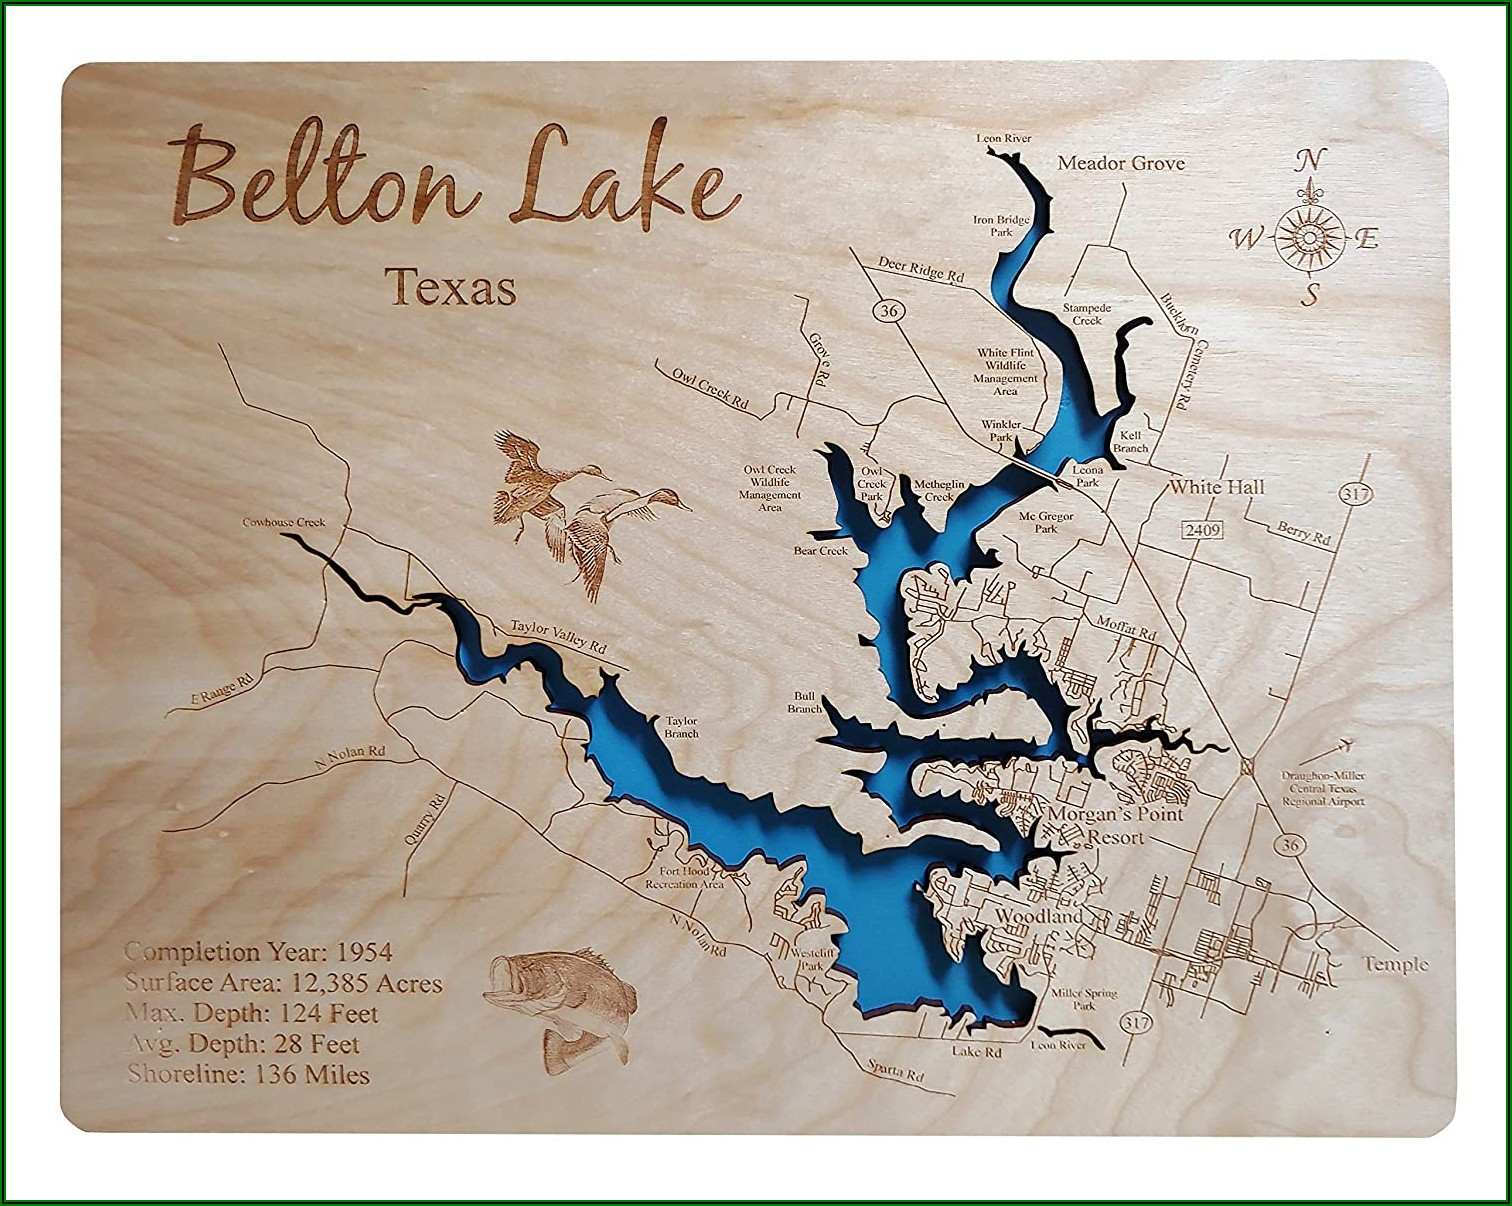 Stillhouse Hollow Lake Topographic Map